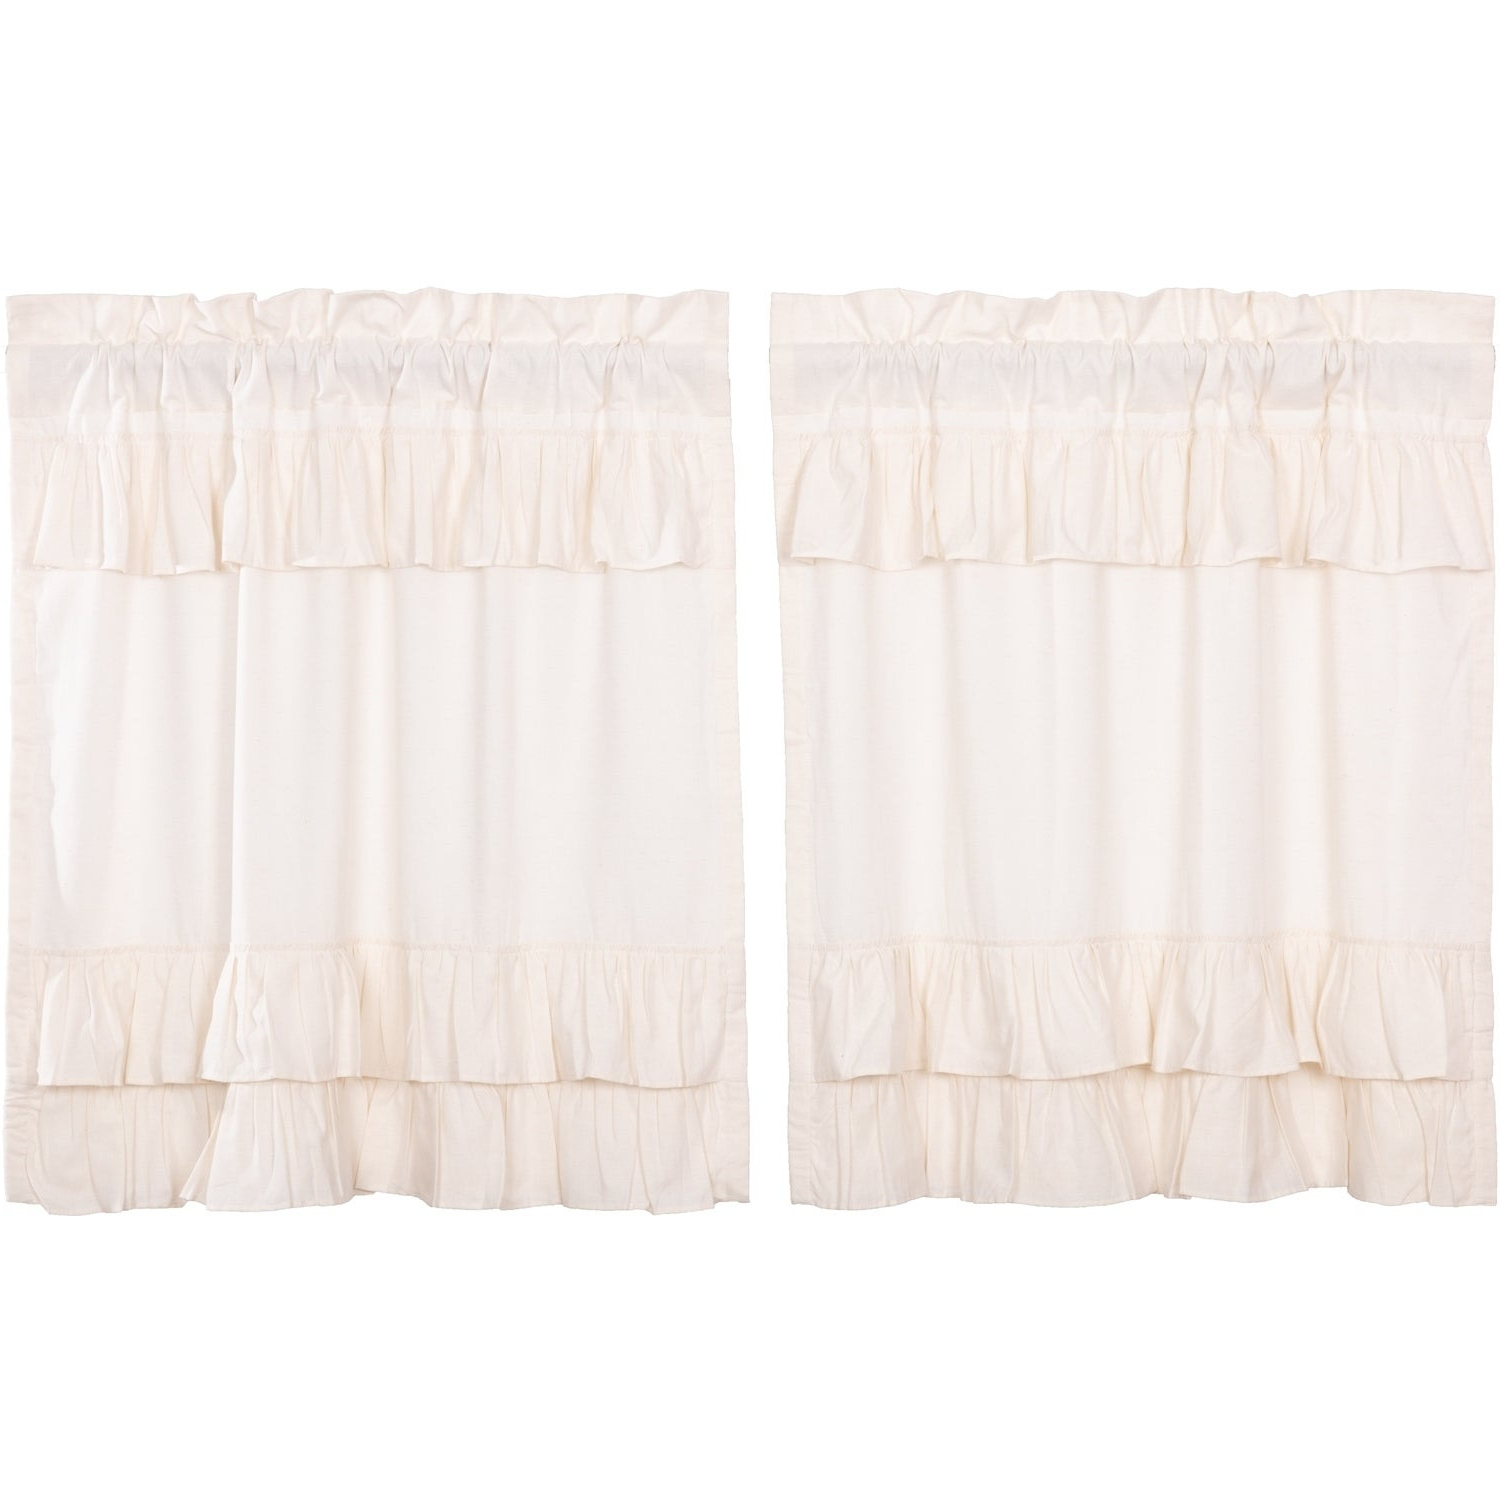 Farmhouse Kitchen Curtains Vhc Simple Life Flax Tier Pair Rod Pocket Cotton  Linen Blend Solid Color Flax With Regard To Best And Newest Rod Pocket Cotton Linen Blend Solid Color Flax Kitchen Curtains (Gallery 5 of 20)